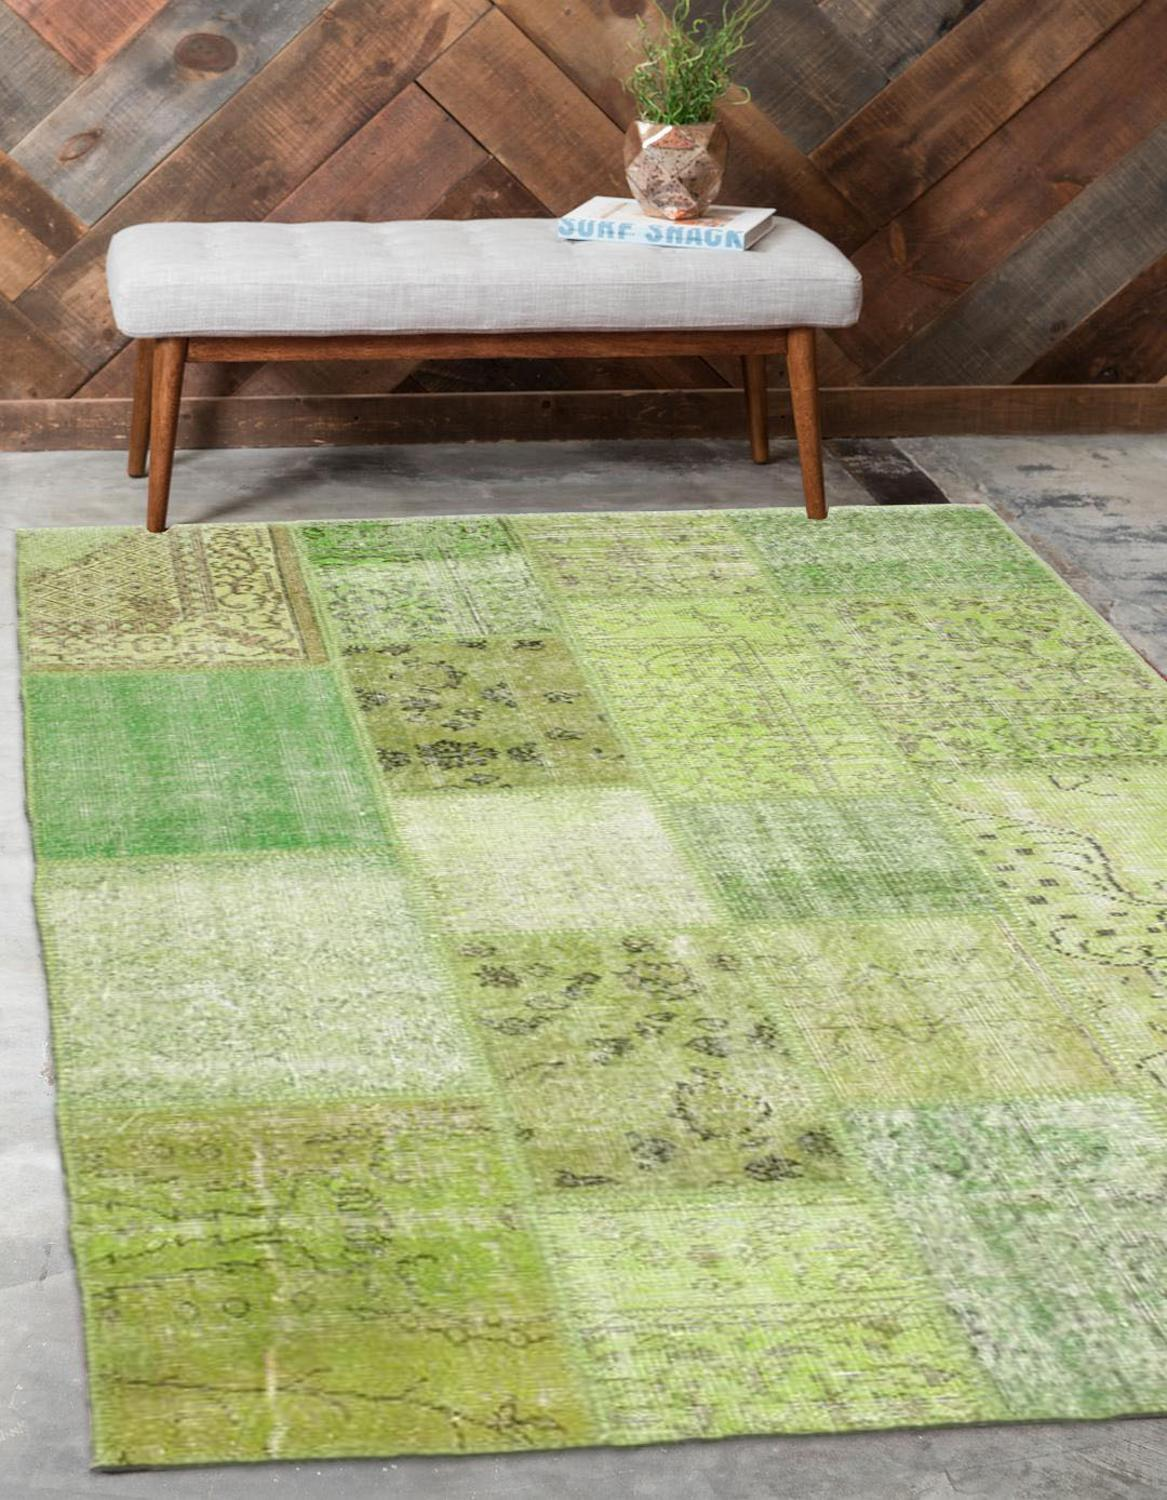 Else Light Green Anatolian Patchwork Rug Turkish Handmade Organic Area Rug Decorative Home Decor Wool Patchwork Rug Carpet